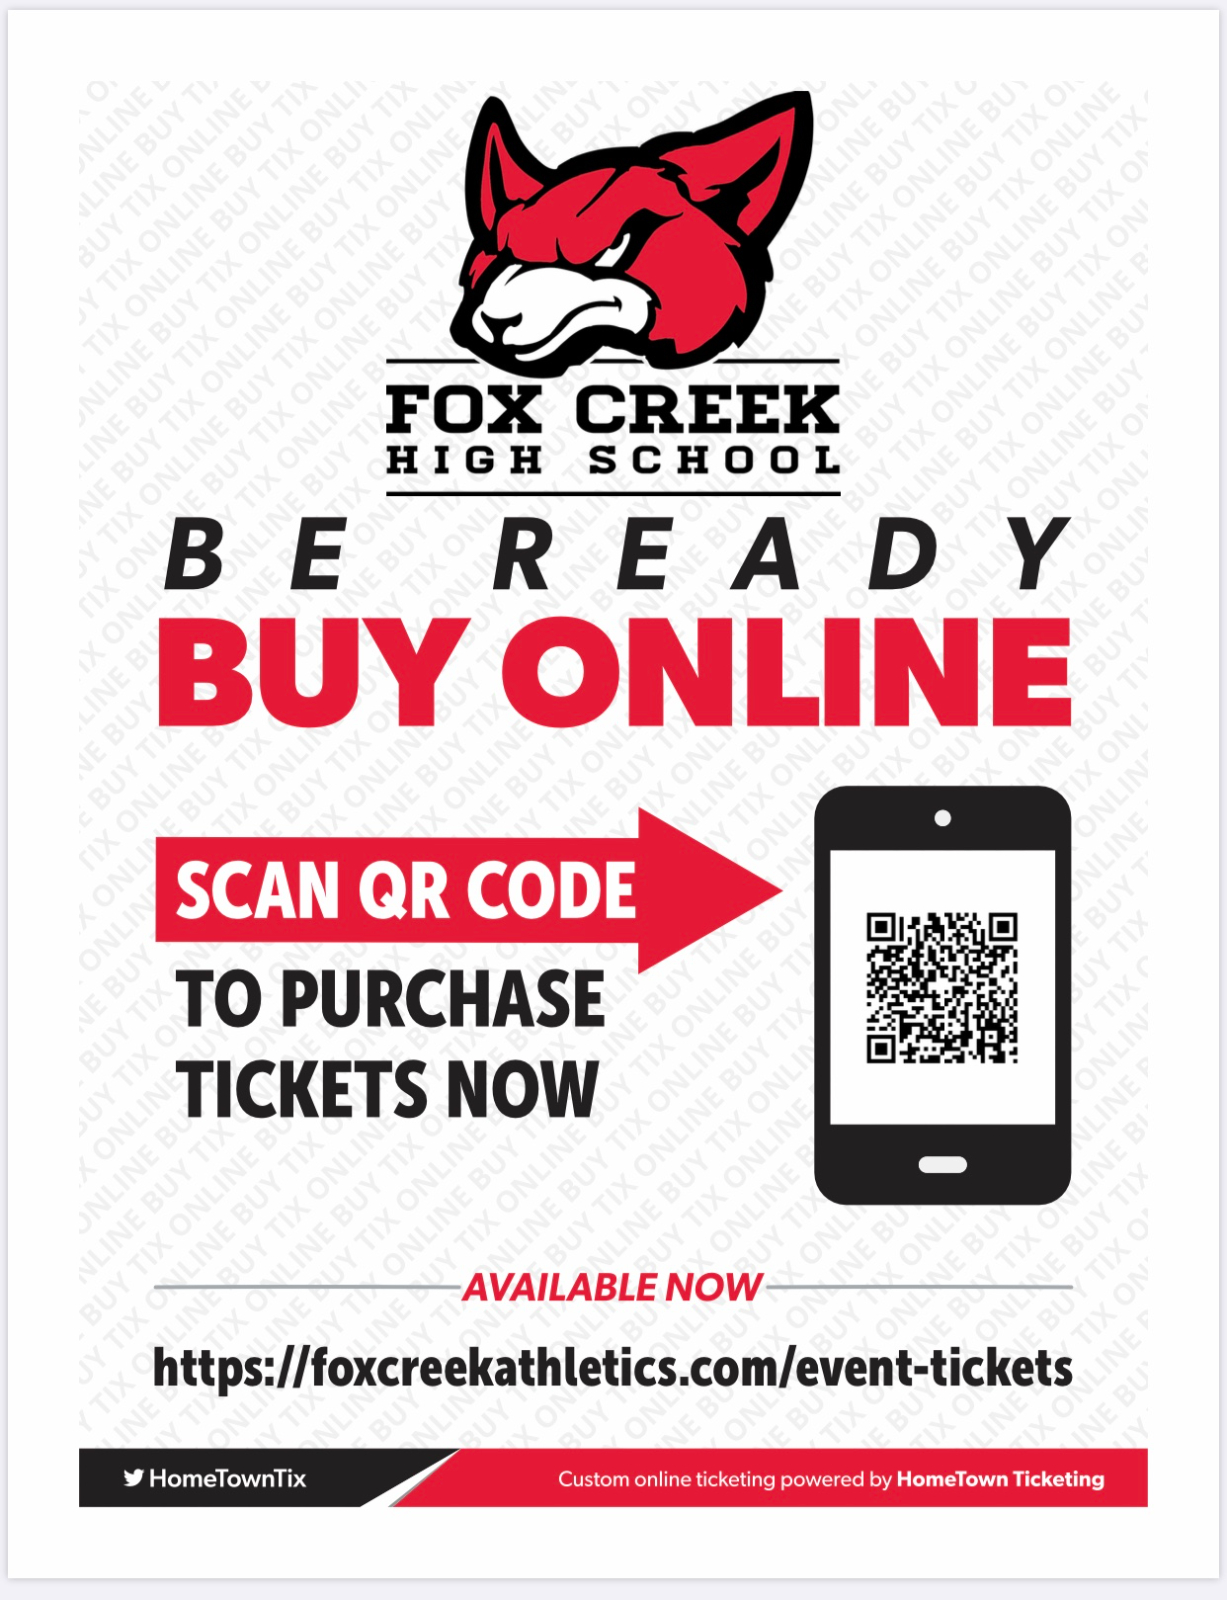 IMPORTANT: Purchase Tickets ONLINE ONLY for ALL HOME Basketball Games